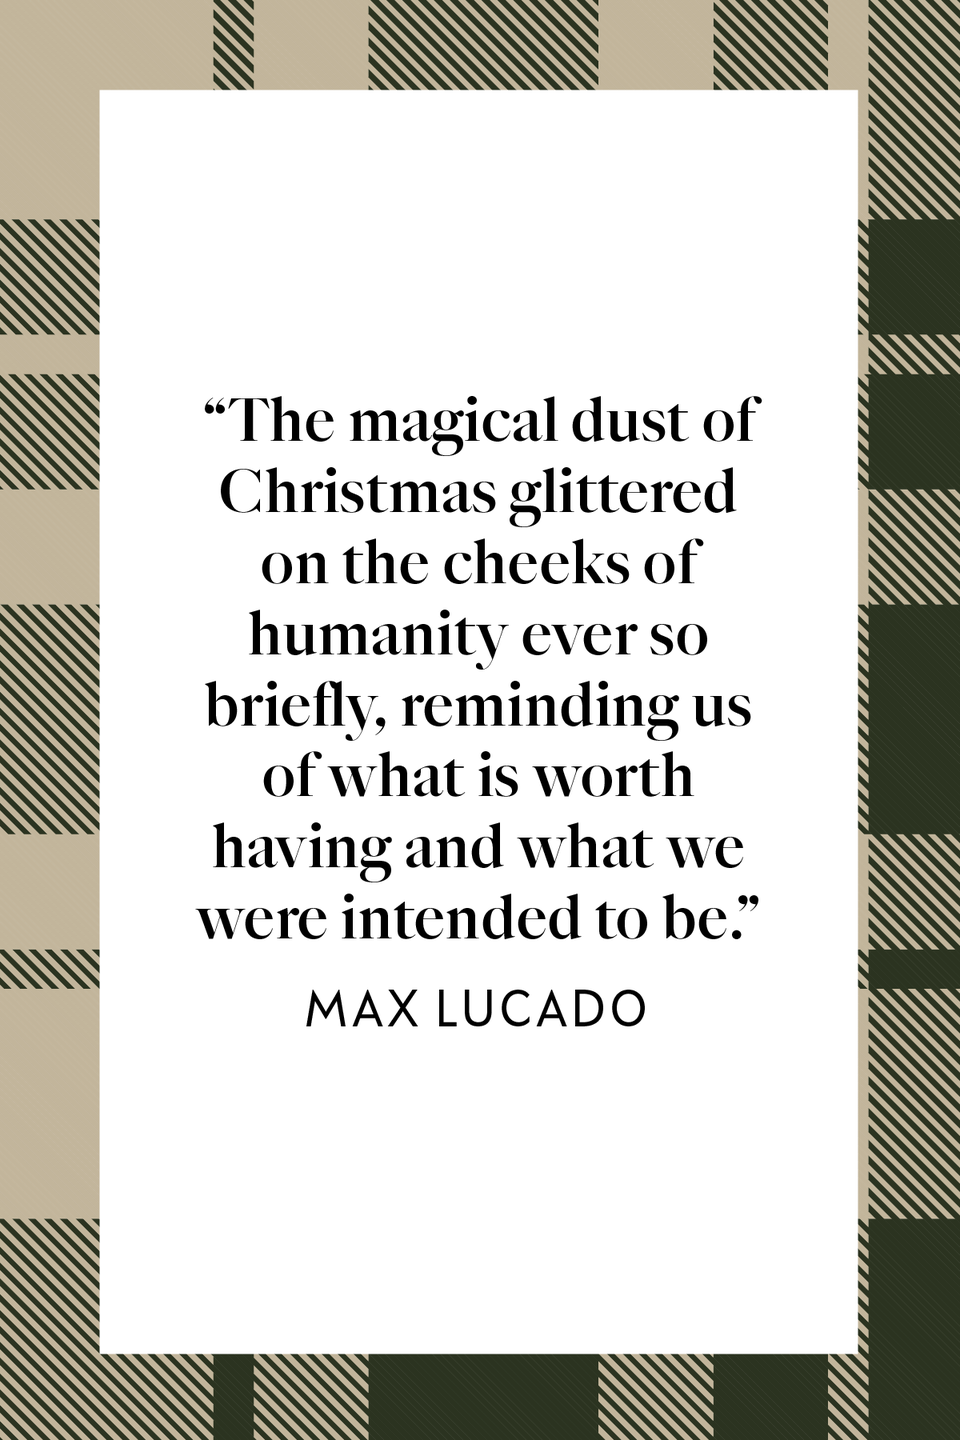 "<p>""The magical dust of Christmas glittered on the cheeks of humanity ever so briefly, reminding us of what is worth having and what we were intended to be,"" author and Texas Pastor Max Lucado said in his book <em><a href=""https://www.amazon.com/God-Came-Near-Max-Lucado/dp/0849944546?tag=syn-yahoo-20&ascsubtag=%5Bartid%7C10072.g.34536312%5Bsrc%7Cyahoo-us#:~:text=It%20all%20happened%20in%20a,manicured%2C%20but%20callused%20and%20dirty."" rel=""nofollow noopener"" target=""_blank"" data-ylk=""slk:God Came Near"" class=""link rapid-noclick-resp"">God Came Near</a></em>.</p>"